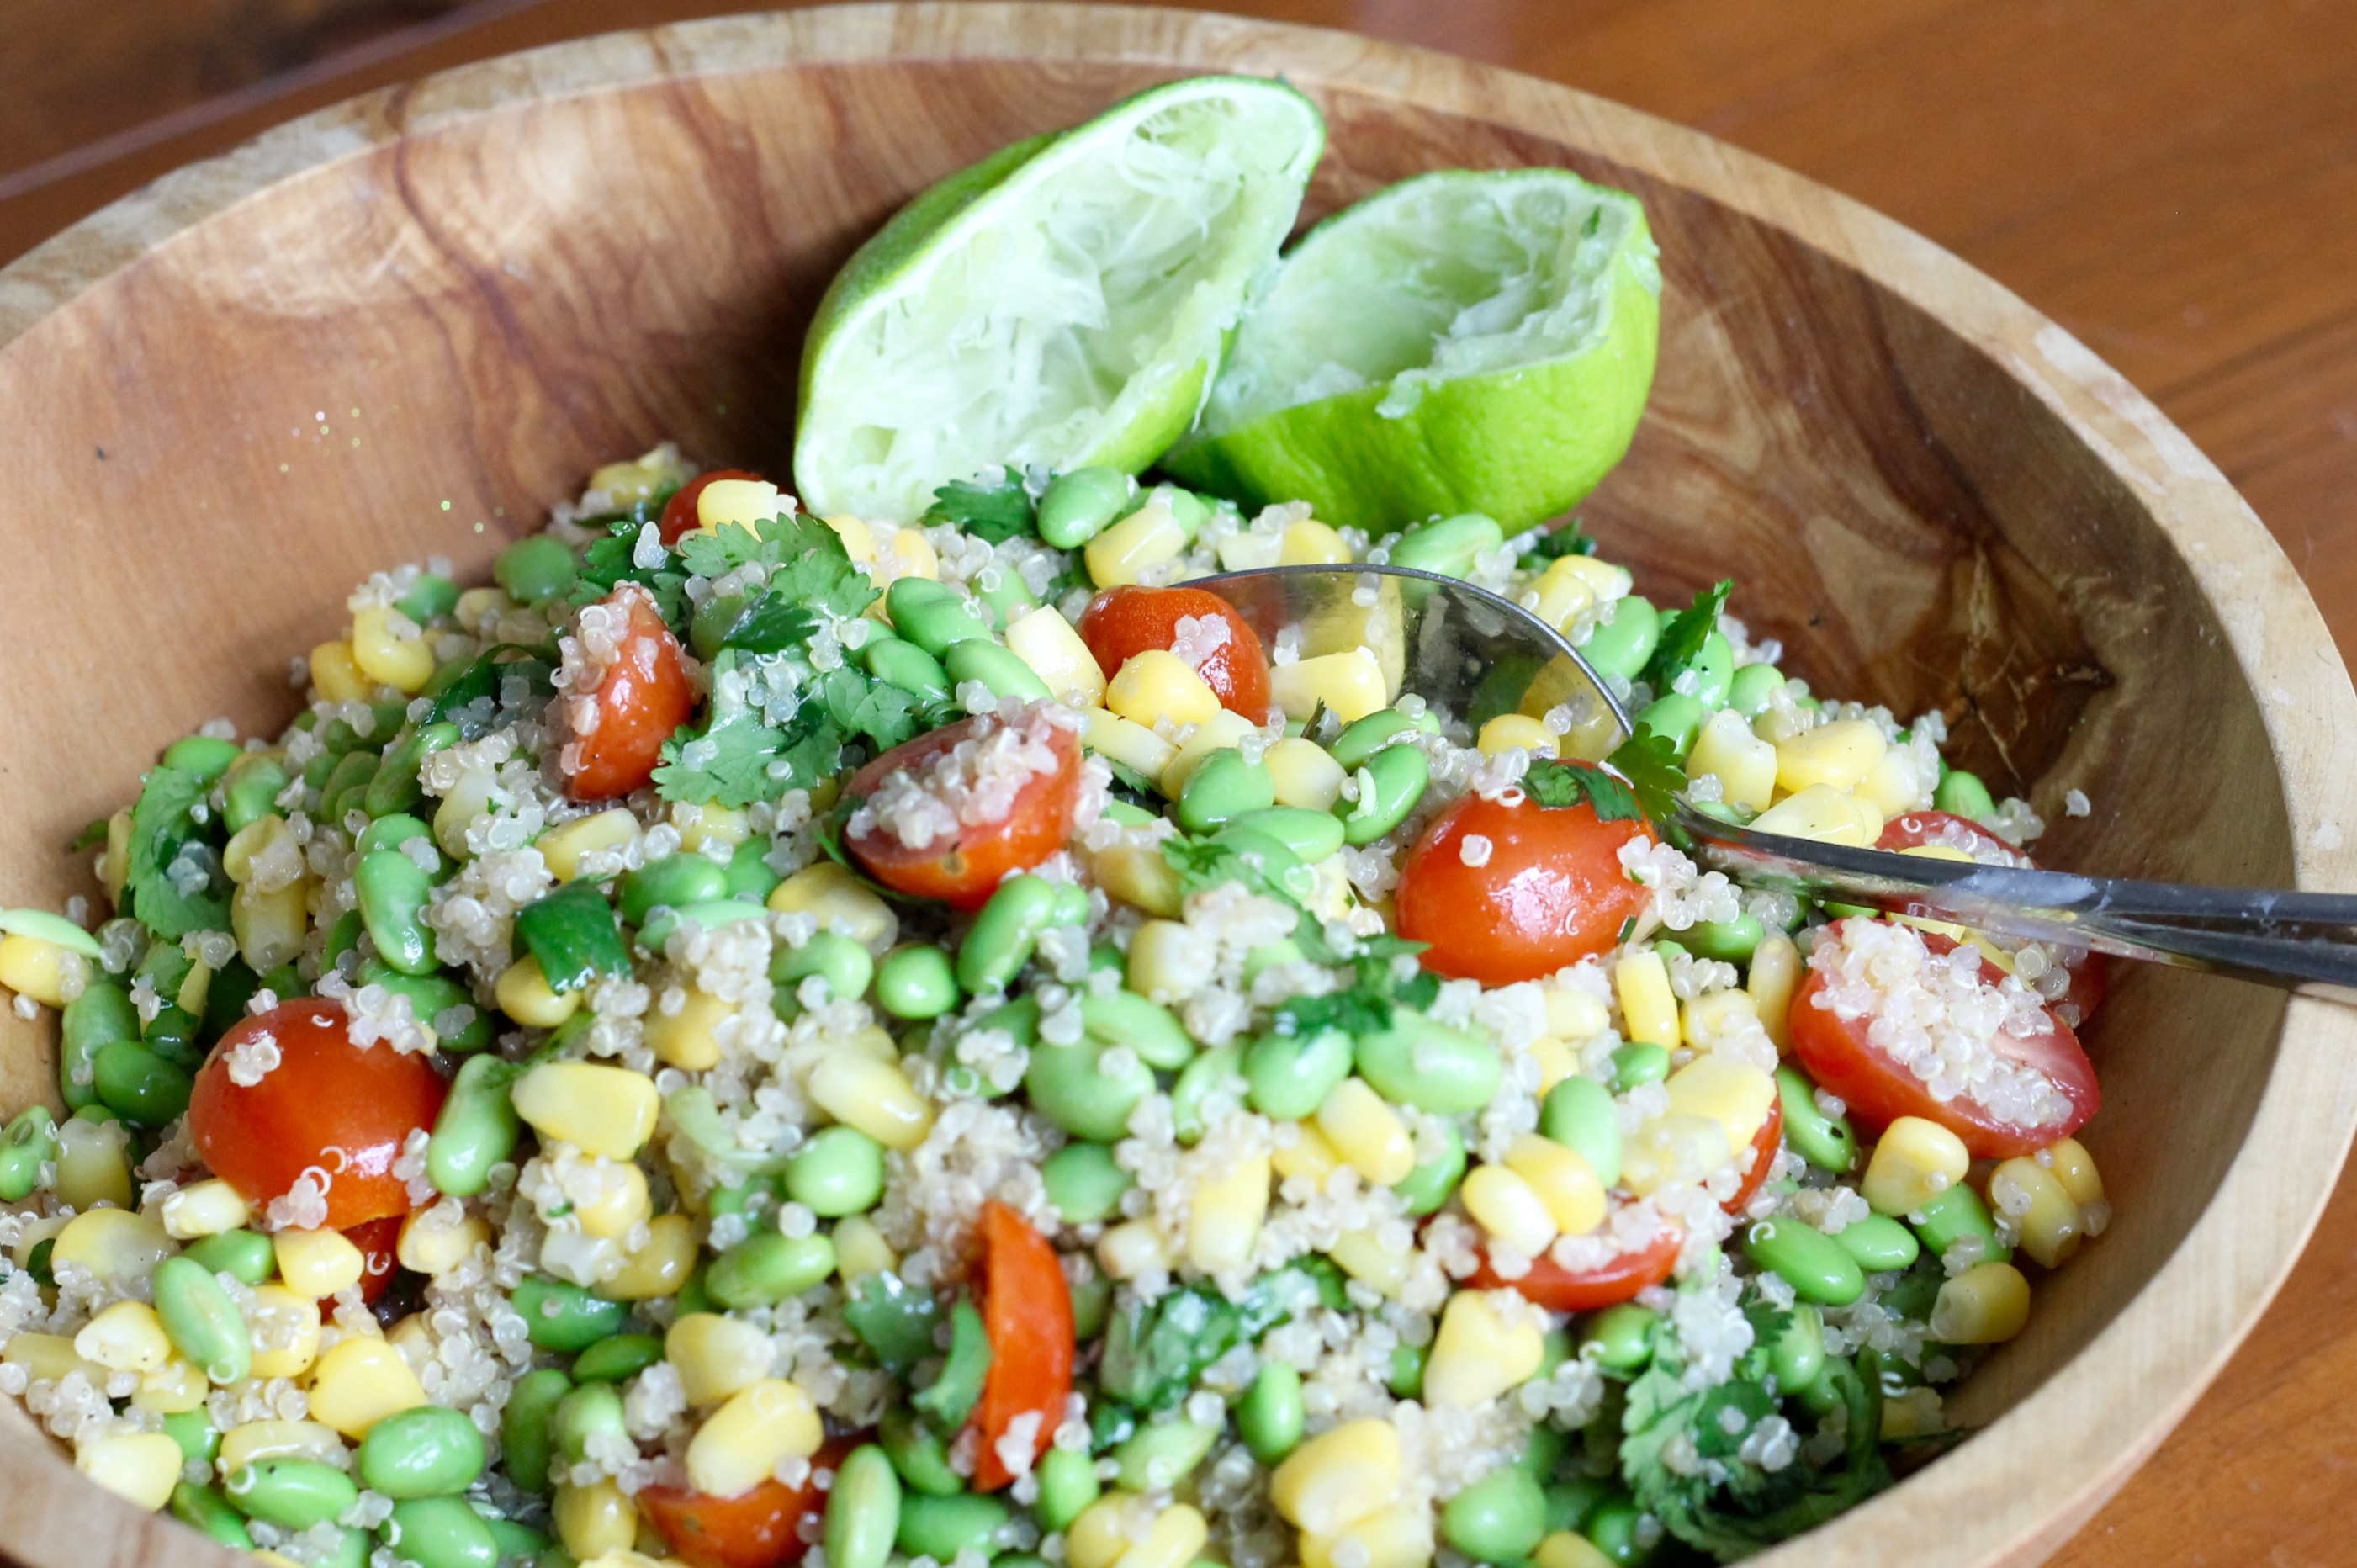 Edamame quinoa salad - The 2 Seasons